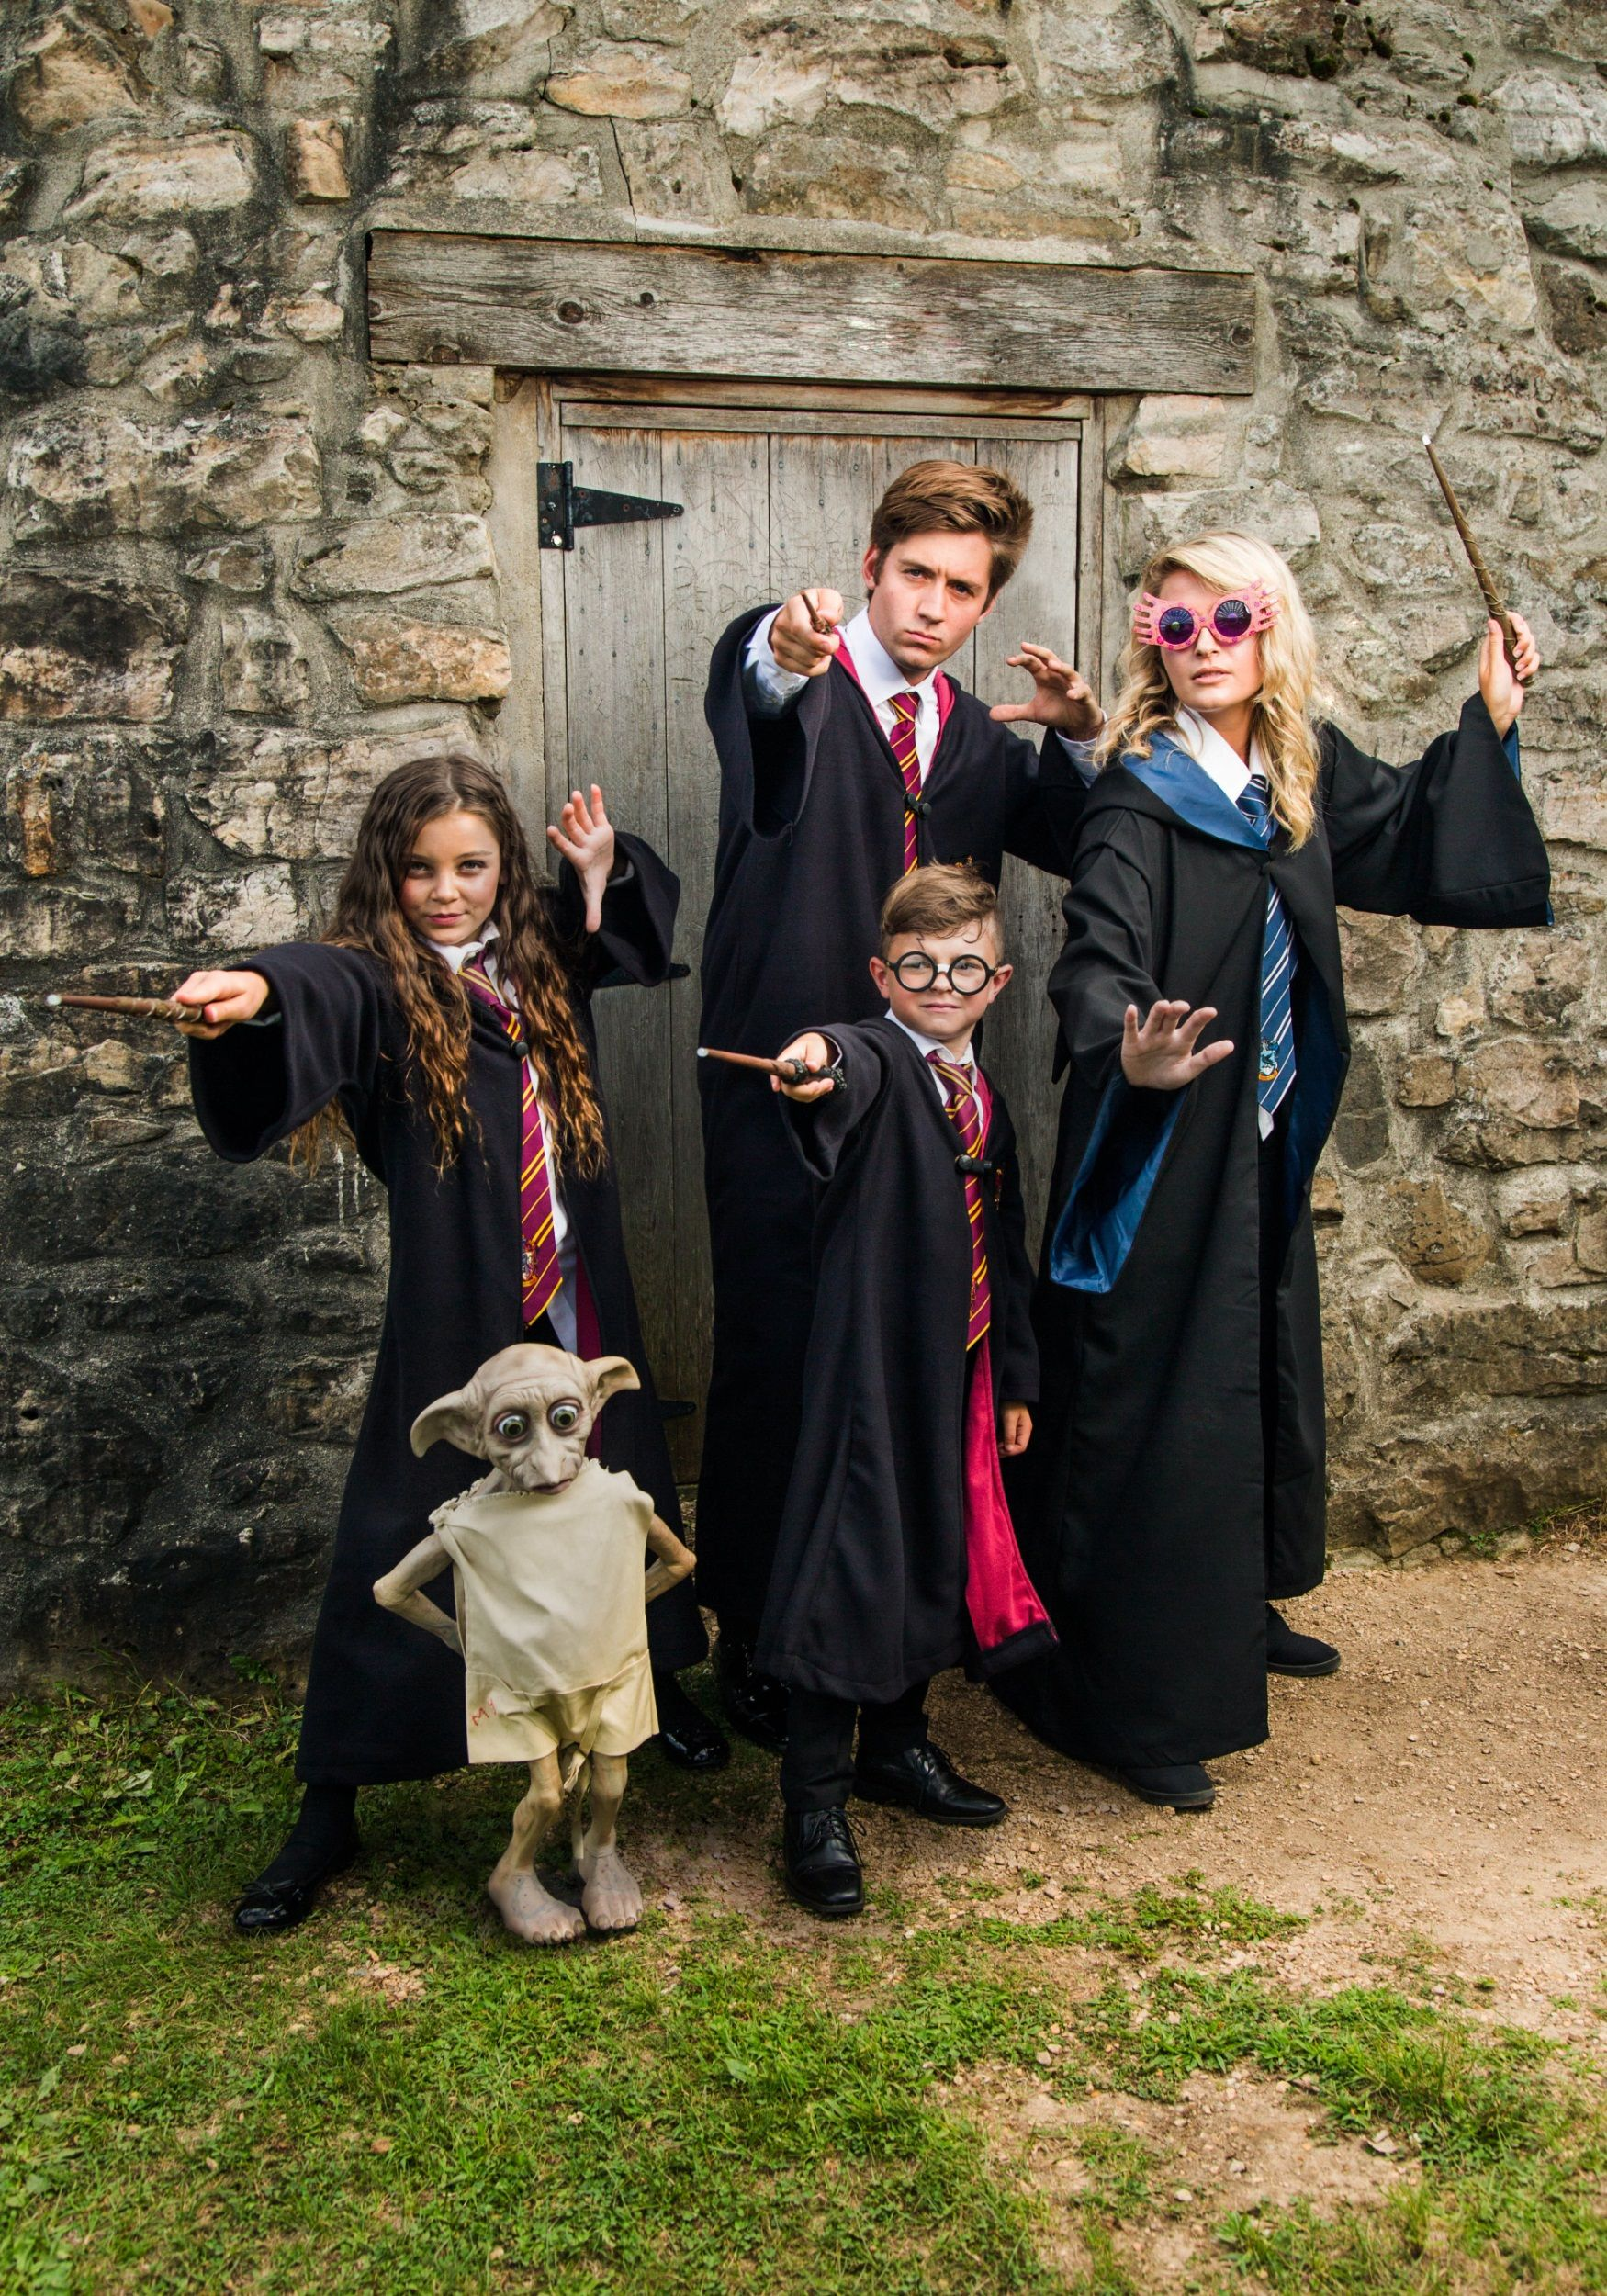 Adorable Harry Potter Family Costume Ideas Harry Potter Family Costume Ideas Halloween En Famille Pinterest Harry Potter Halloween Costumes Ebay Harry Potter Halloween Costumes Canada baby Harry Potter Halloween Costumes